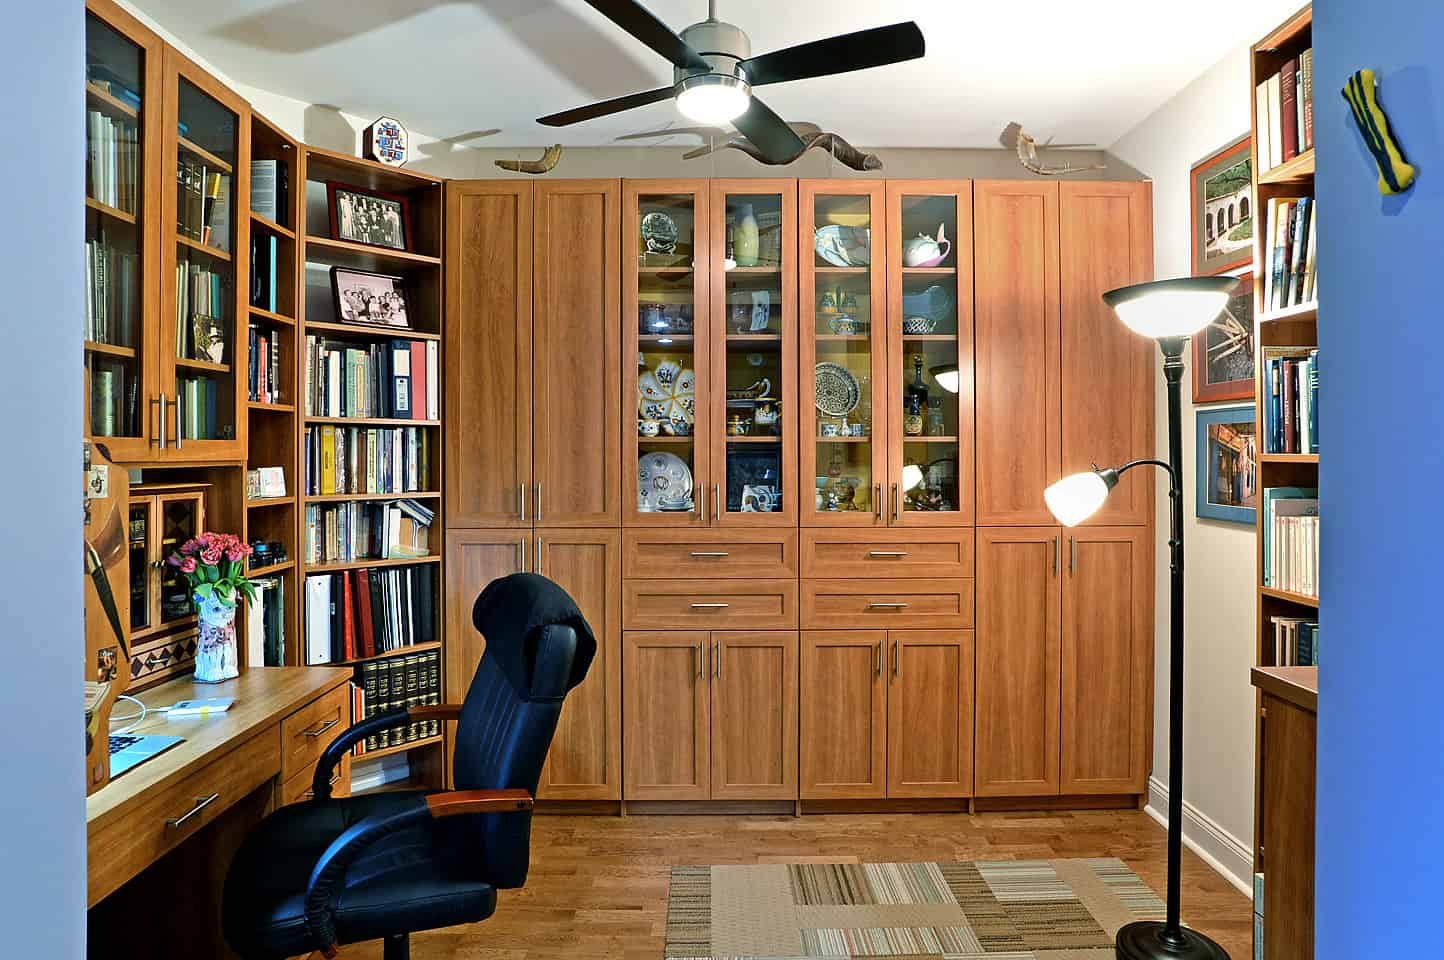 A classy home office with a built-in desk with the same finish as the cabinetry and bookshelves. The hardwood flooring fits well with the room instead.